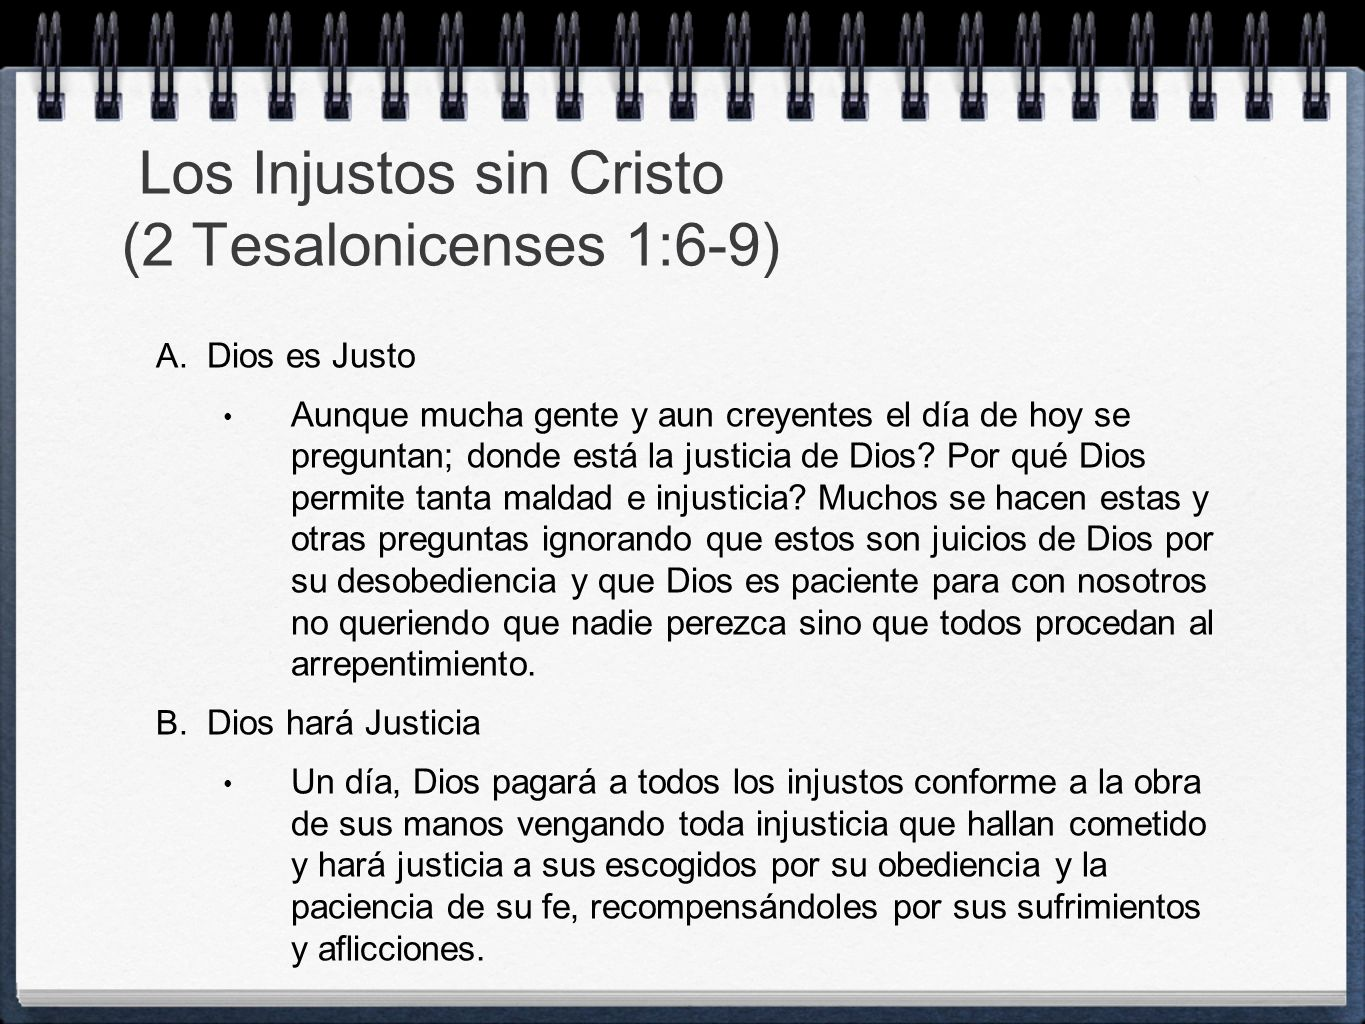 Los Injustos sin Cristo (2 Tesalonicenses 1:6-9)